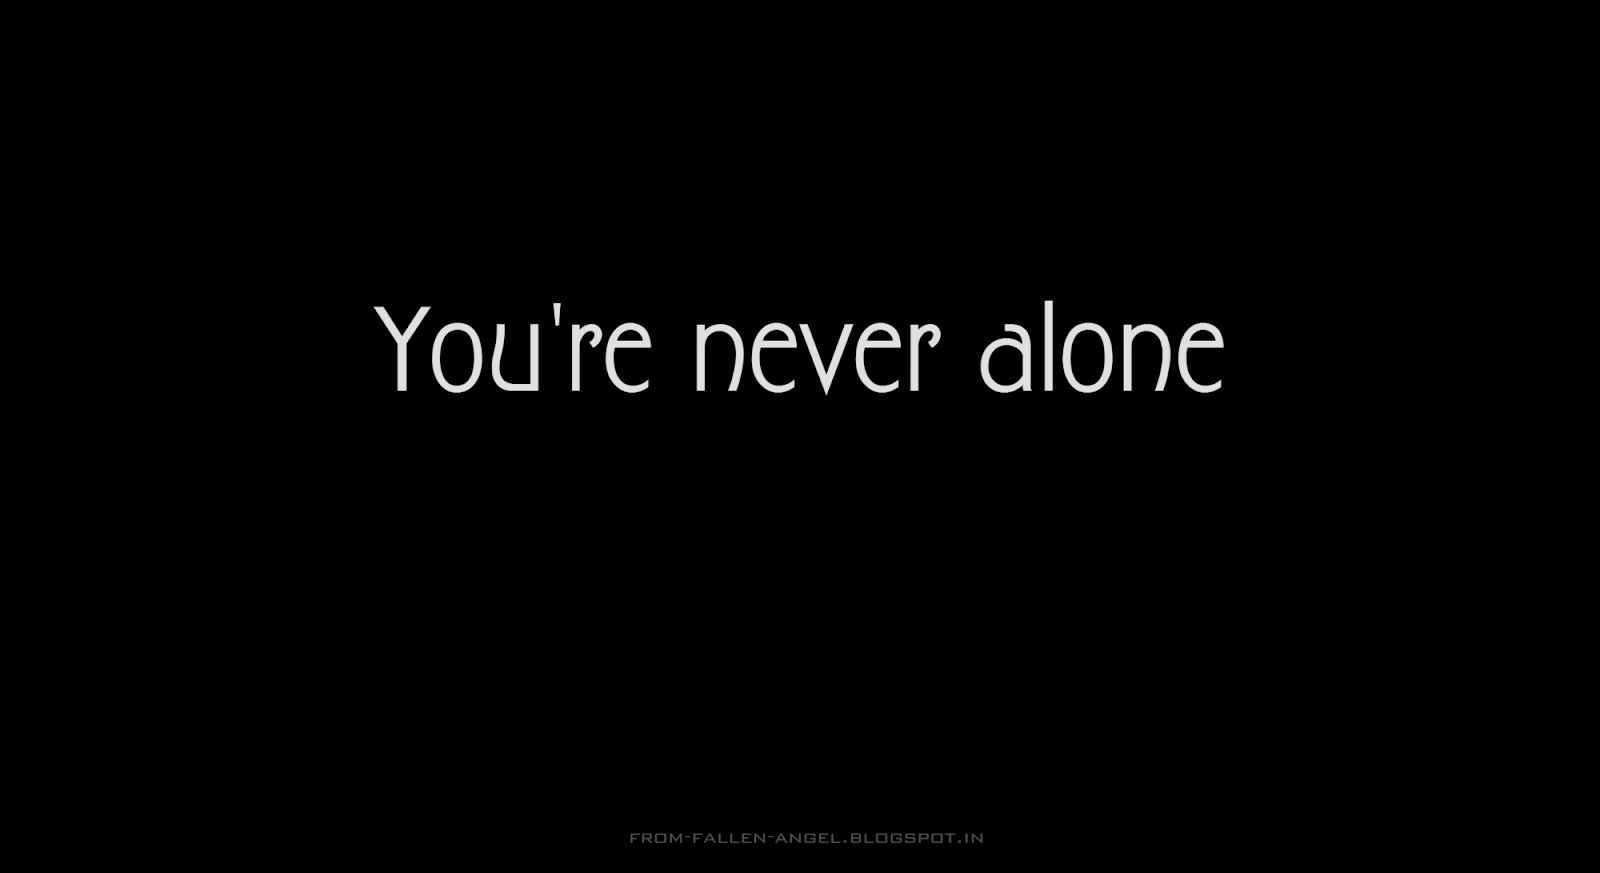 You're never alone